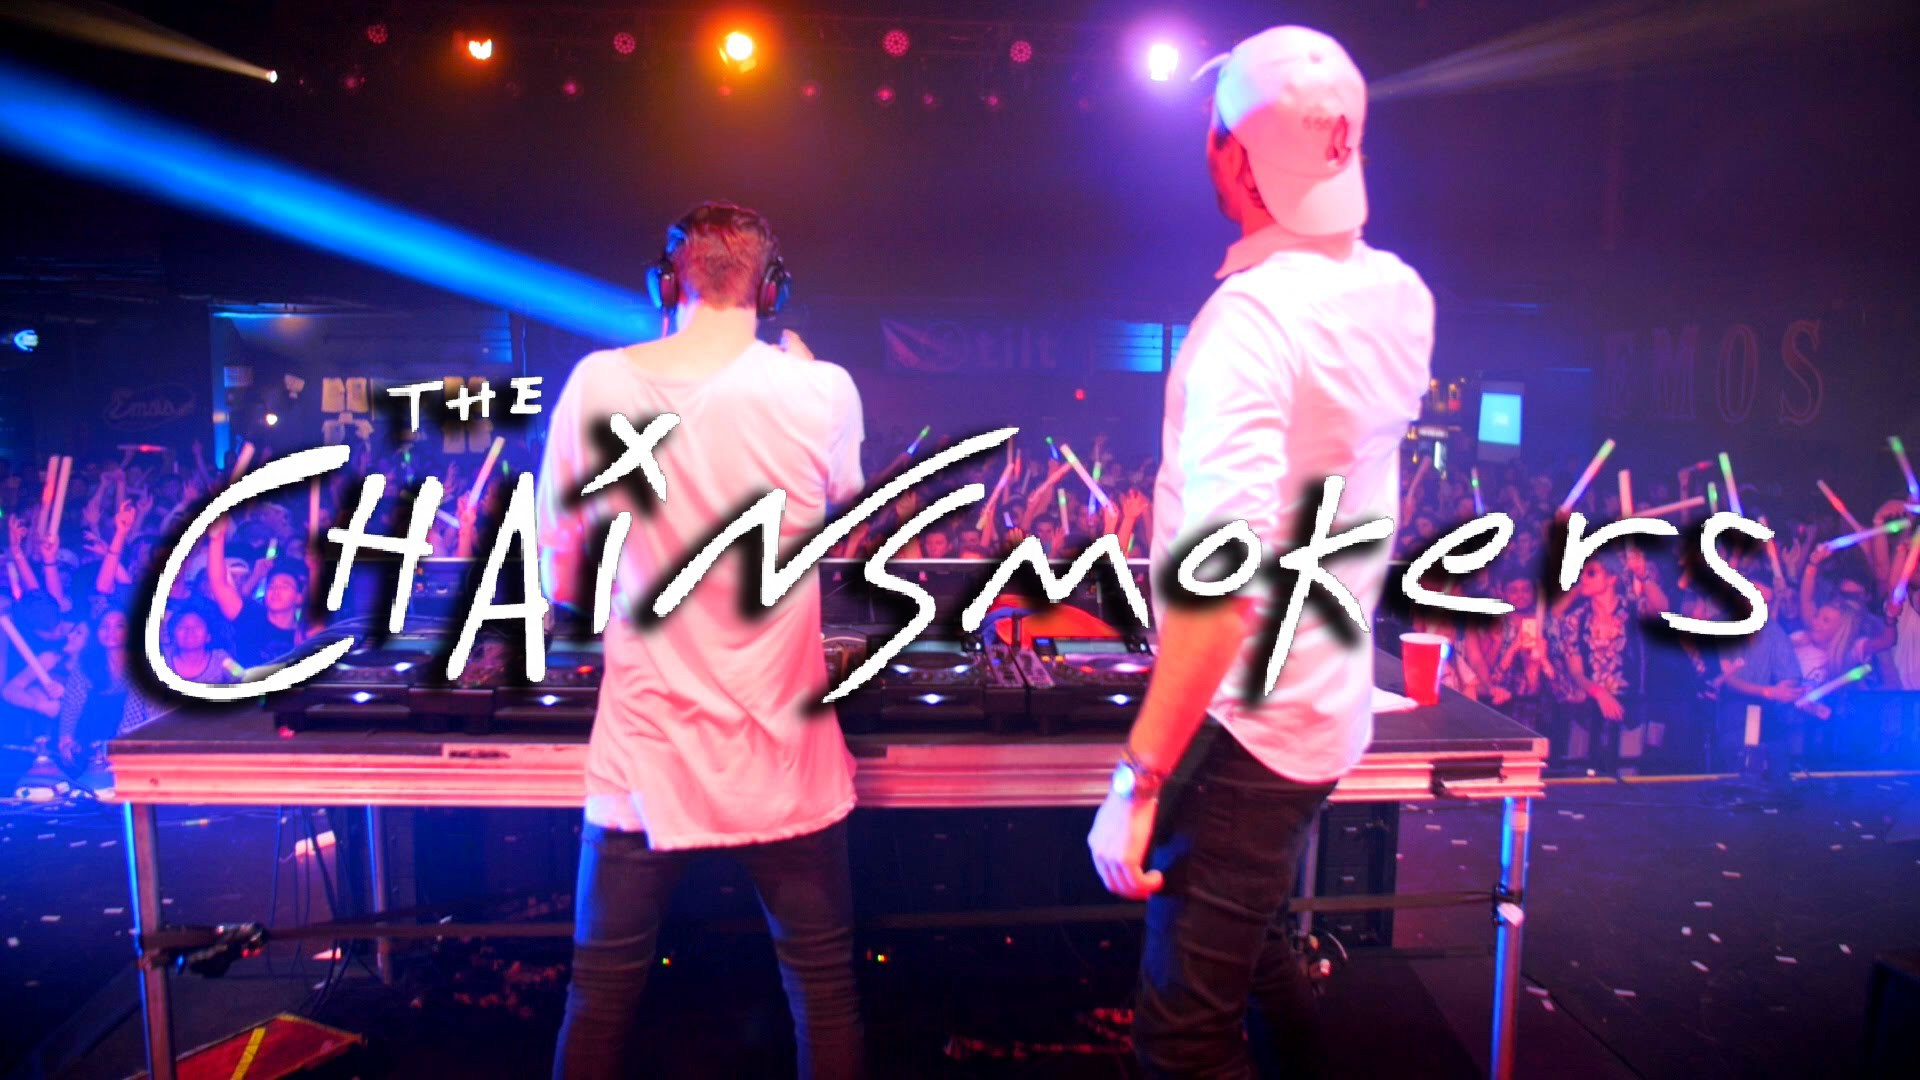 The Chainsmokers High Definition Wallpapers 1920x1080